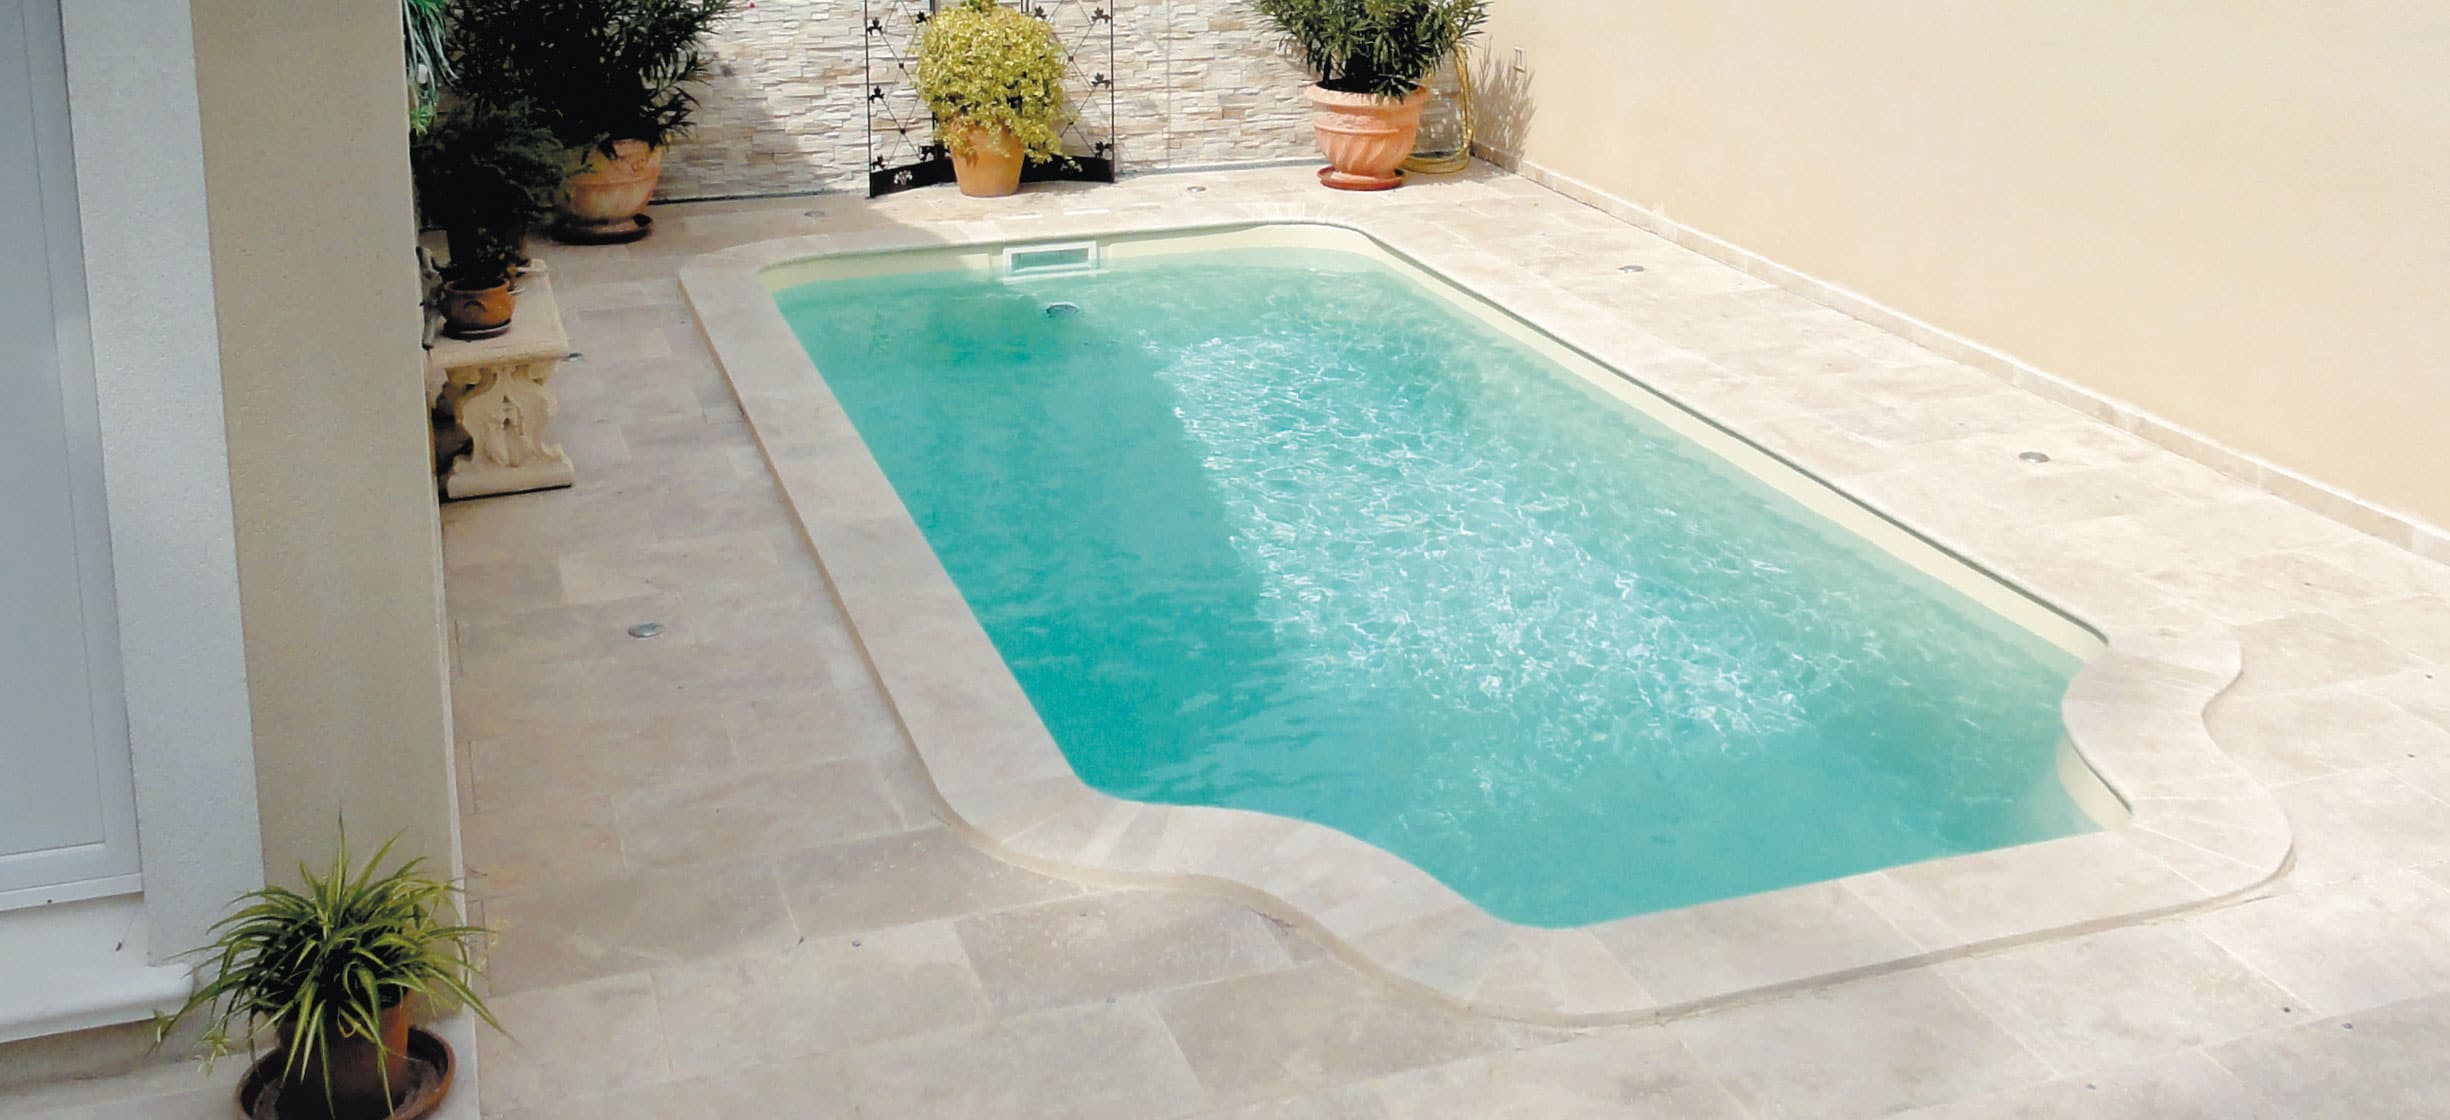 Niolon 6,50 X 3,00 X 1,45 M - Aqua Piscines : Construction ... destiné Piscine Coque Ou Beton